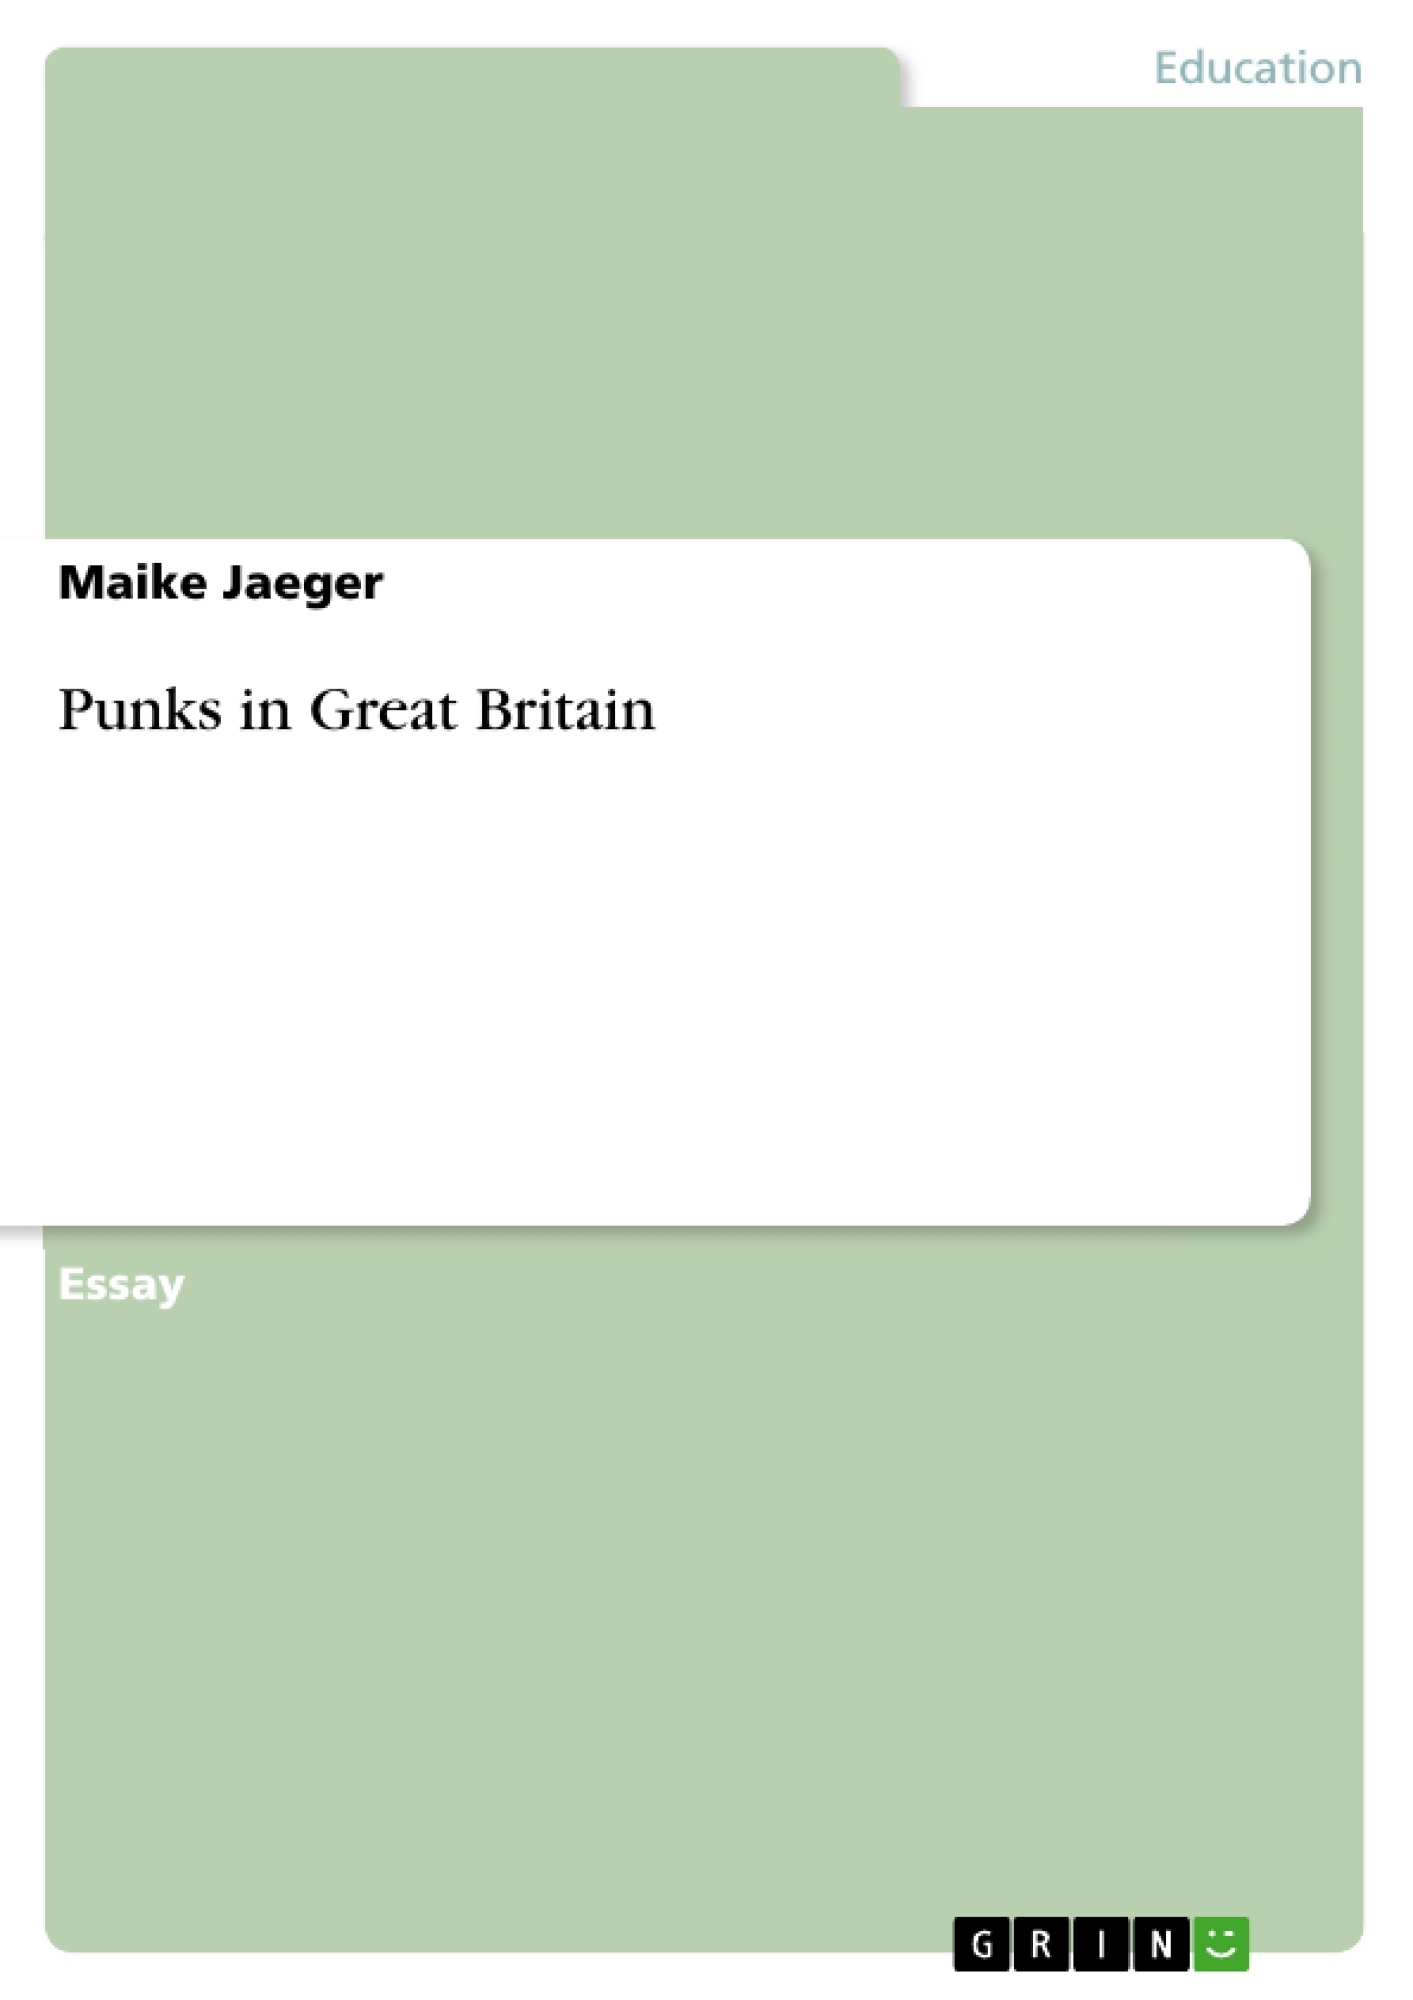 Title: Punks in Great Britain